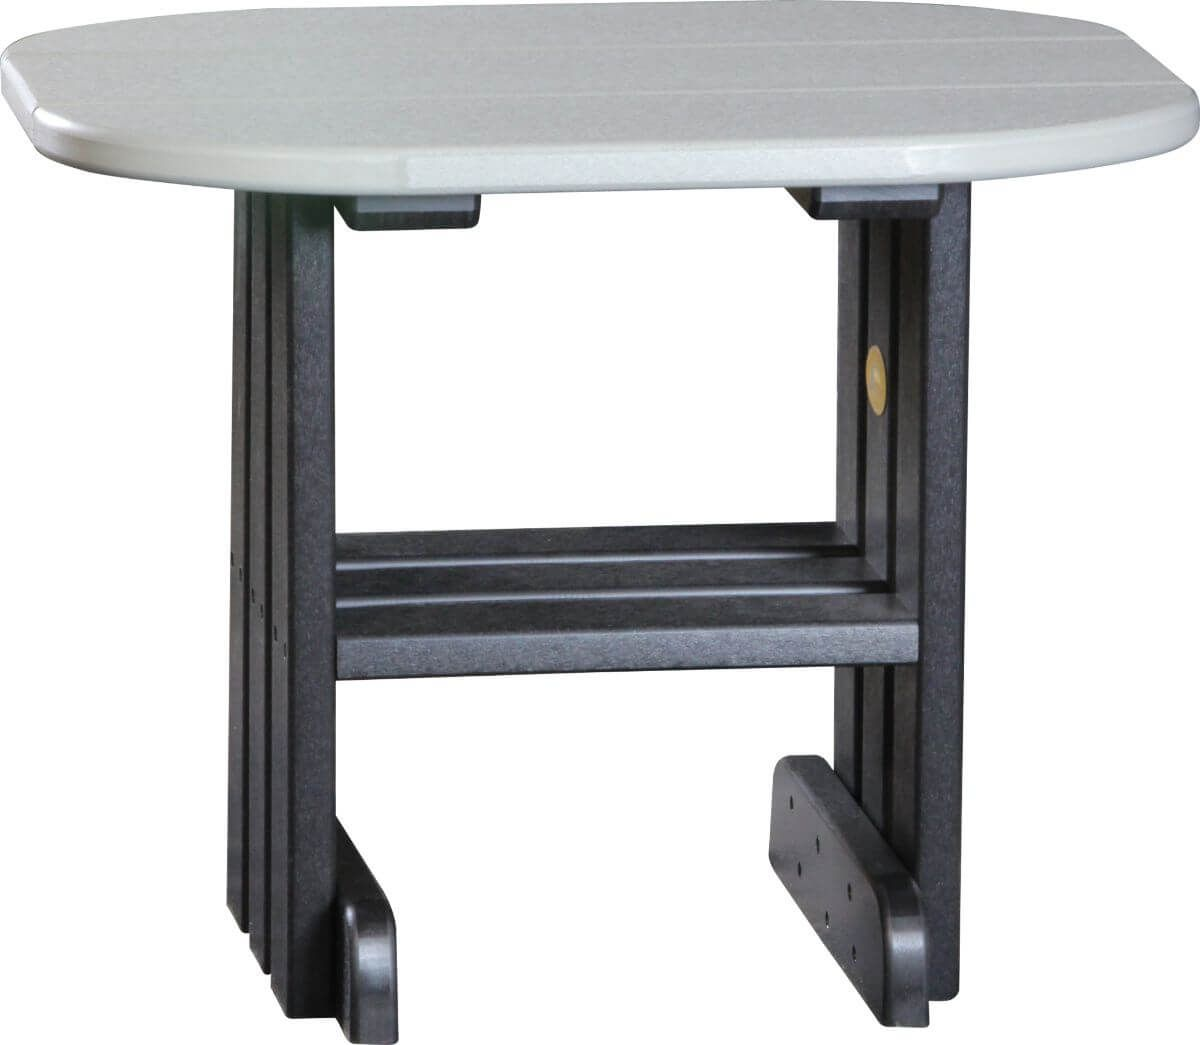 Dove Gray and Black Tahiti Outdoor Side Table